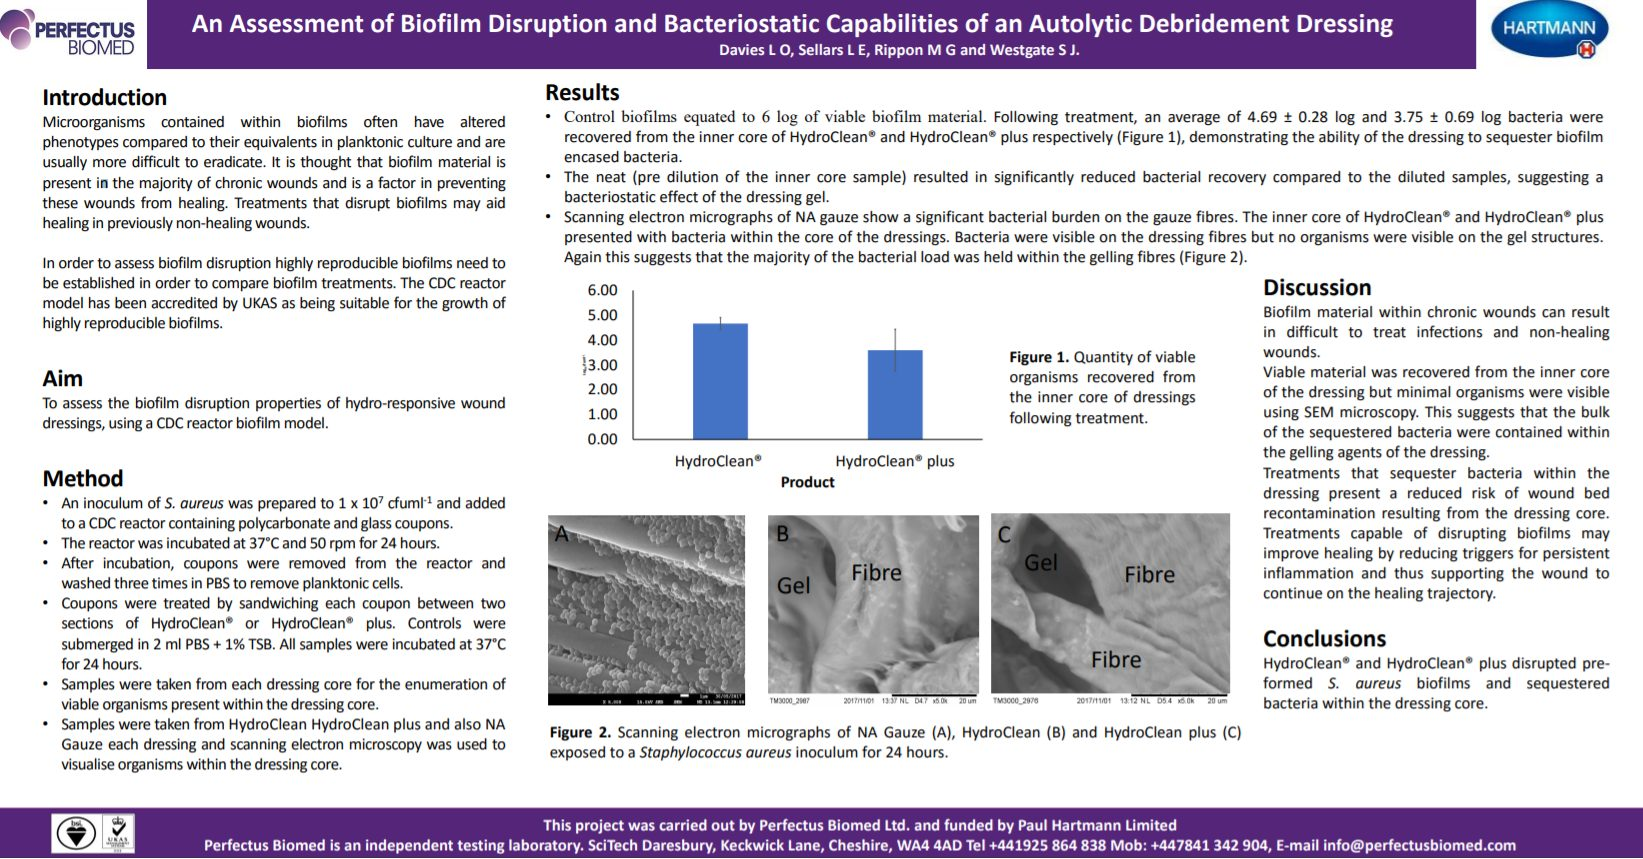 An Assessment of Biofilm Disruption and Bacteriostatic Capabilities of an Autolytic Debridement Dressing